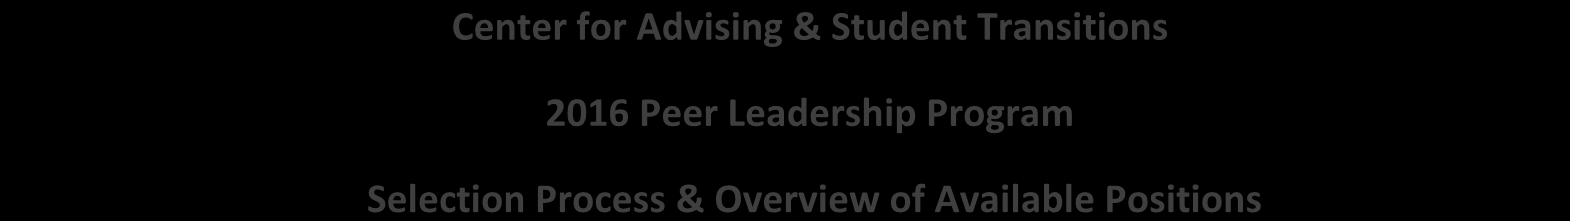 Center for Advising & Student Transitions 2016 Peer Leadership Program Selection Process & Overview of Available Positions Thank you for your interest in one of our Peer Leadership positions.